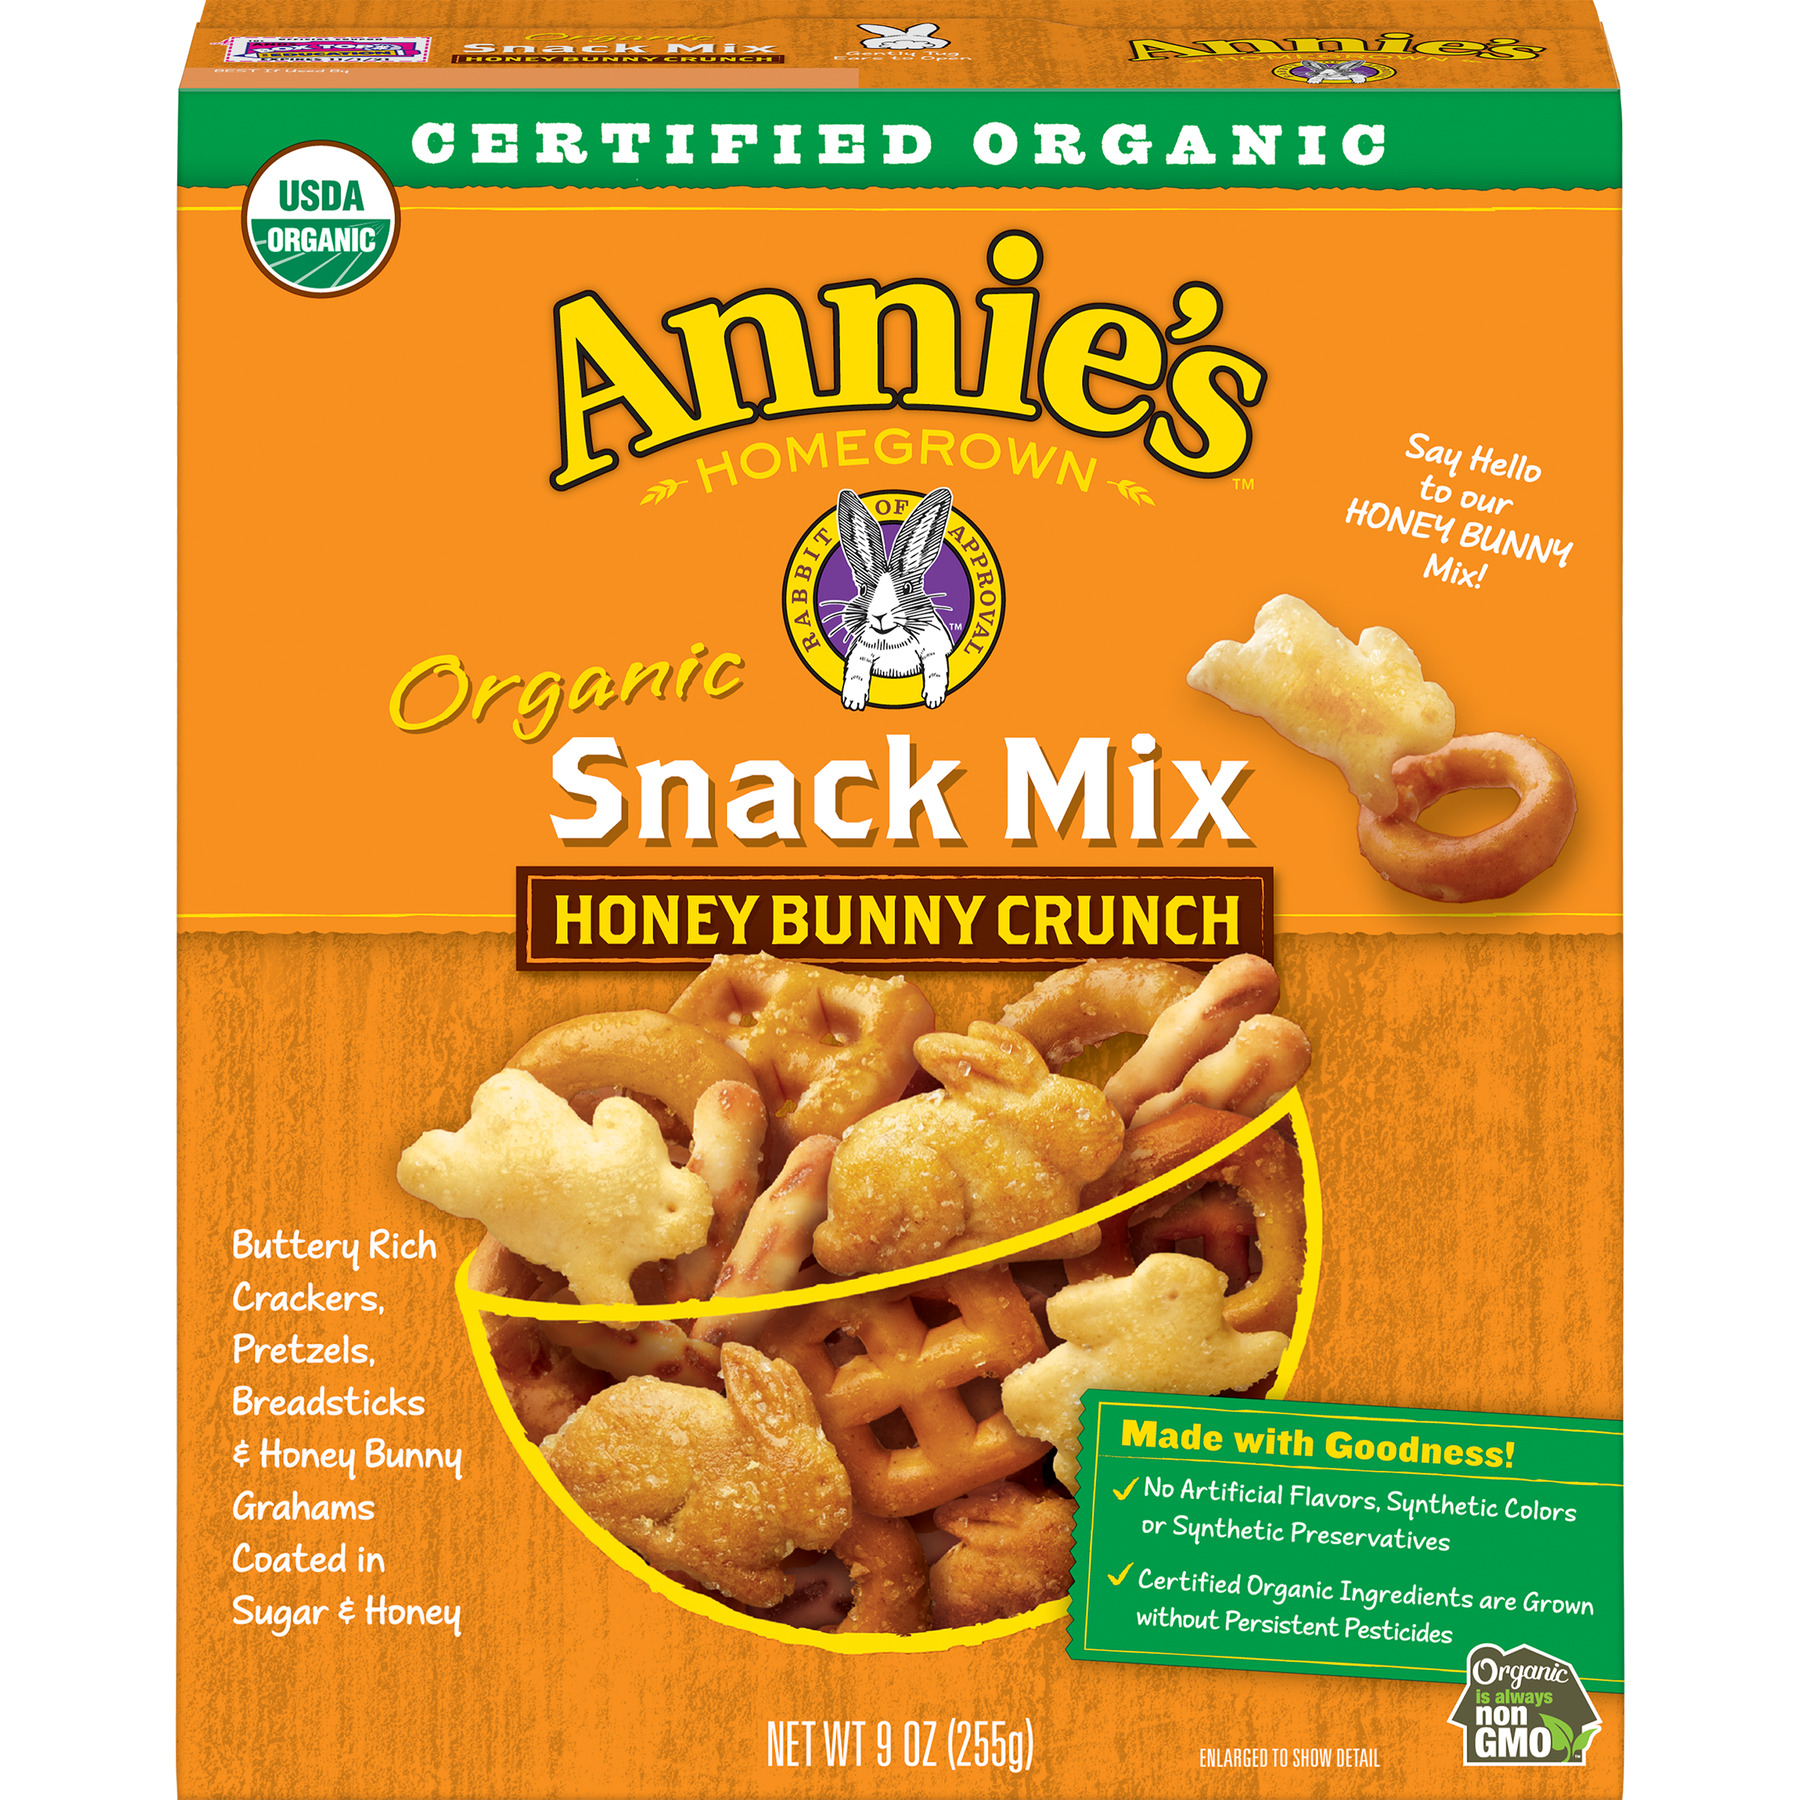 Annie's Honey Bunny Crunch Organic Snack Mix, 9 oz